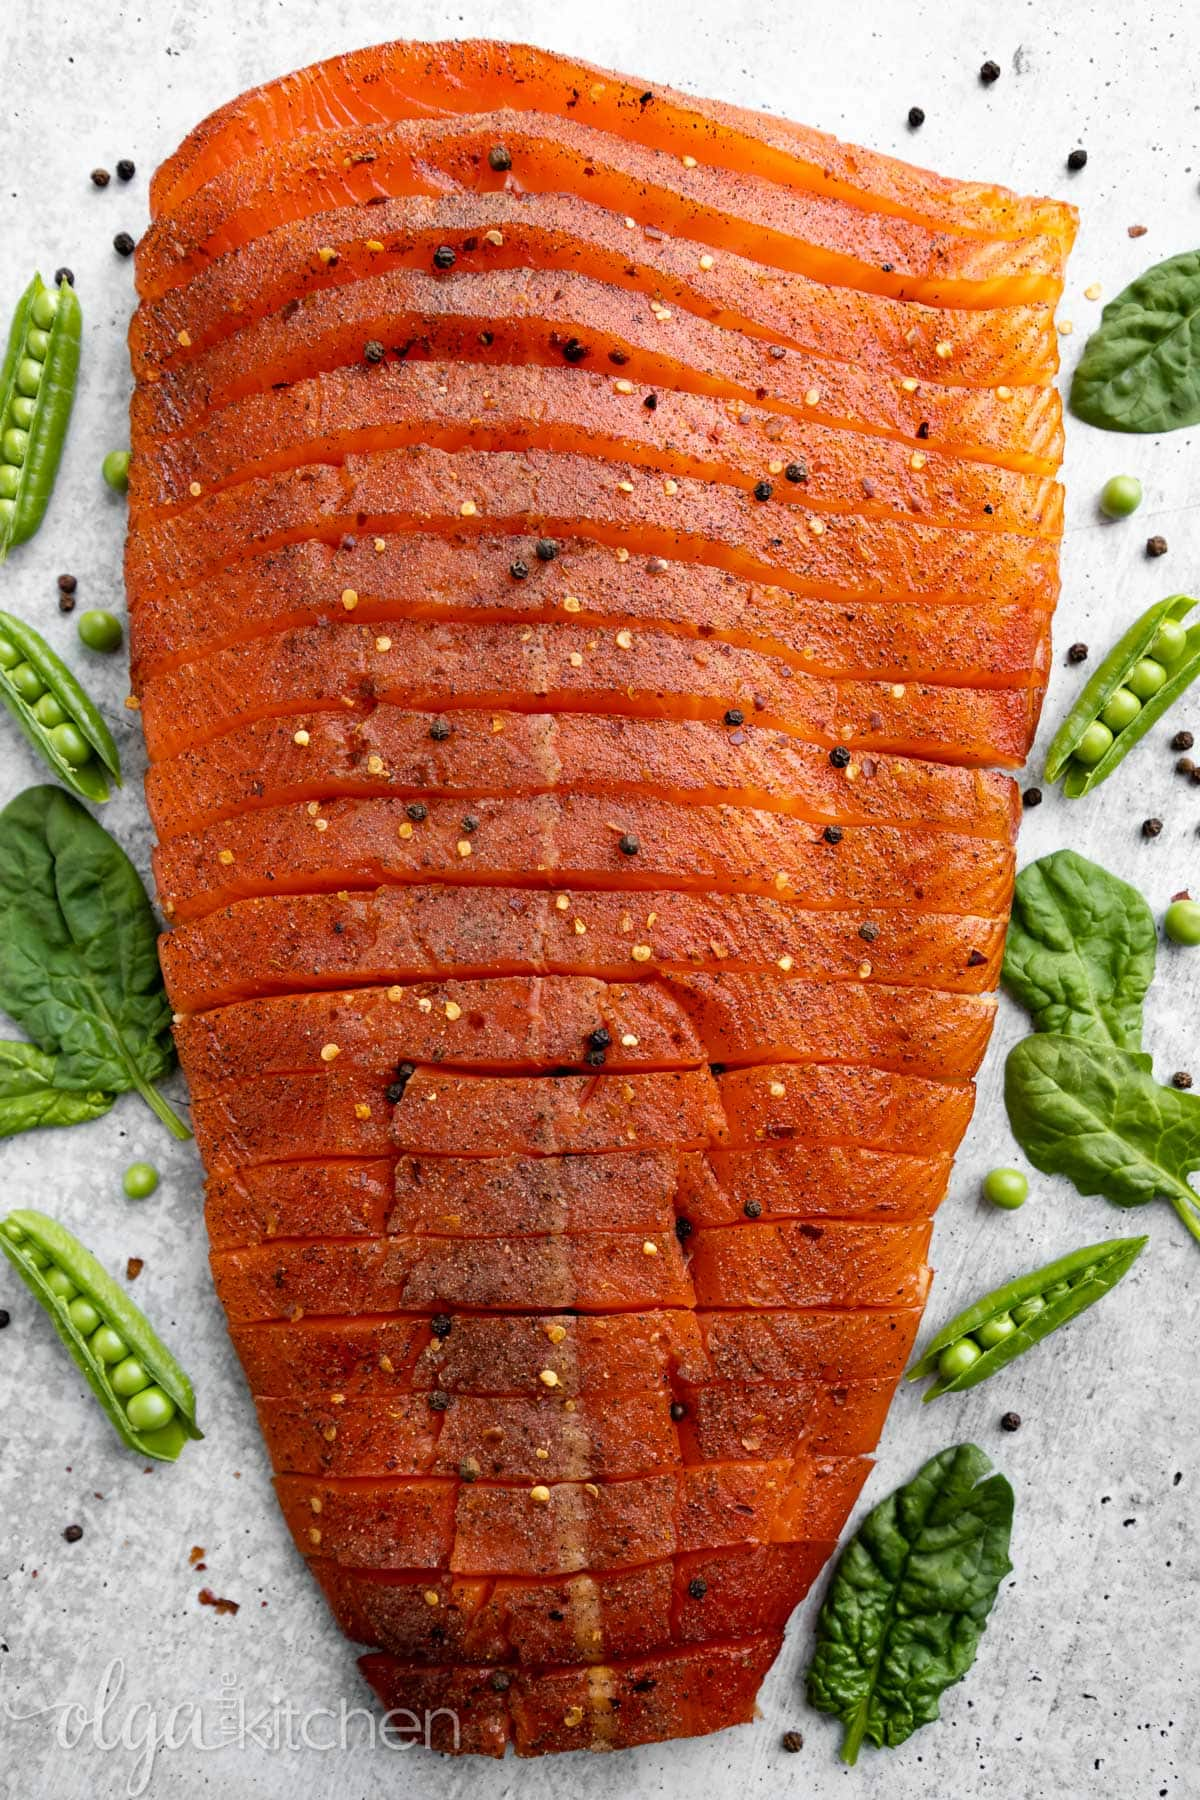 Easy Smoked Salmon is juicy and flaky with a simple salt, sugar and pepper cure. An easy step-by-step guide to make the best and most delicious hot Smoked Salmon at home. #smokedsalmon #salmon #olgainthekitchen #holiday #summer #homemade